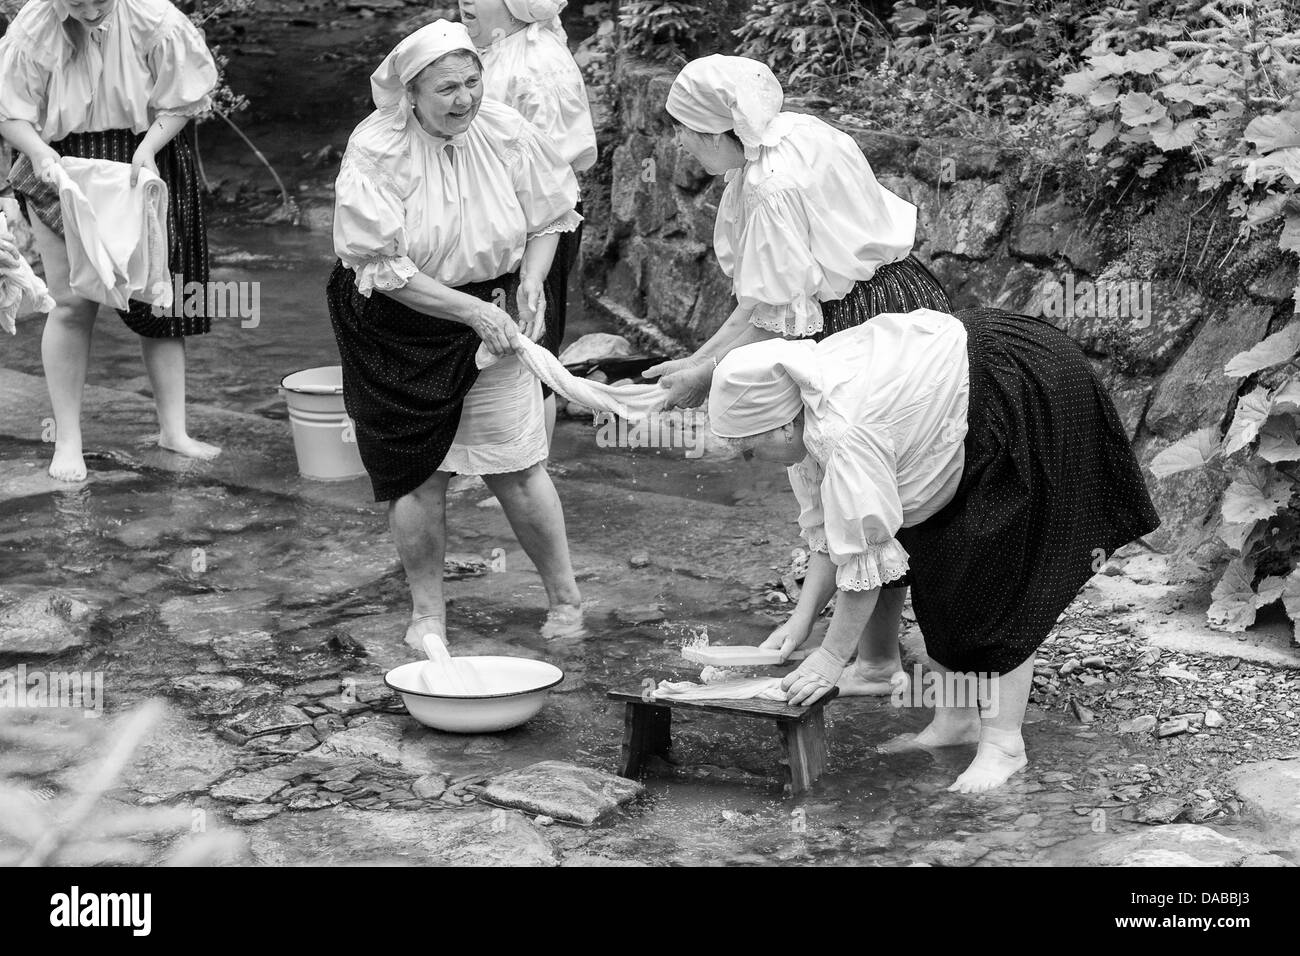 Women hand washing on stream. Show in open-air museum - Stock Image